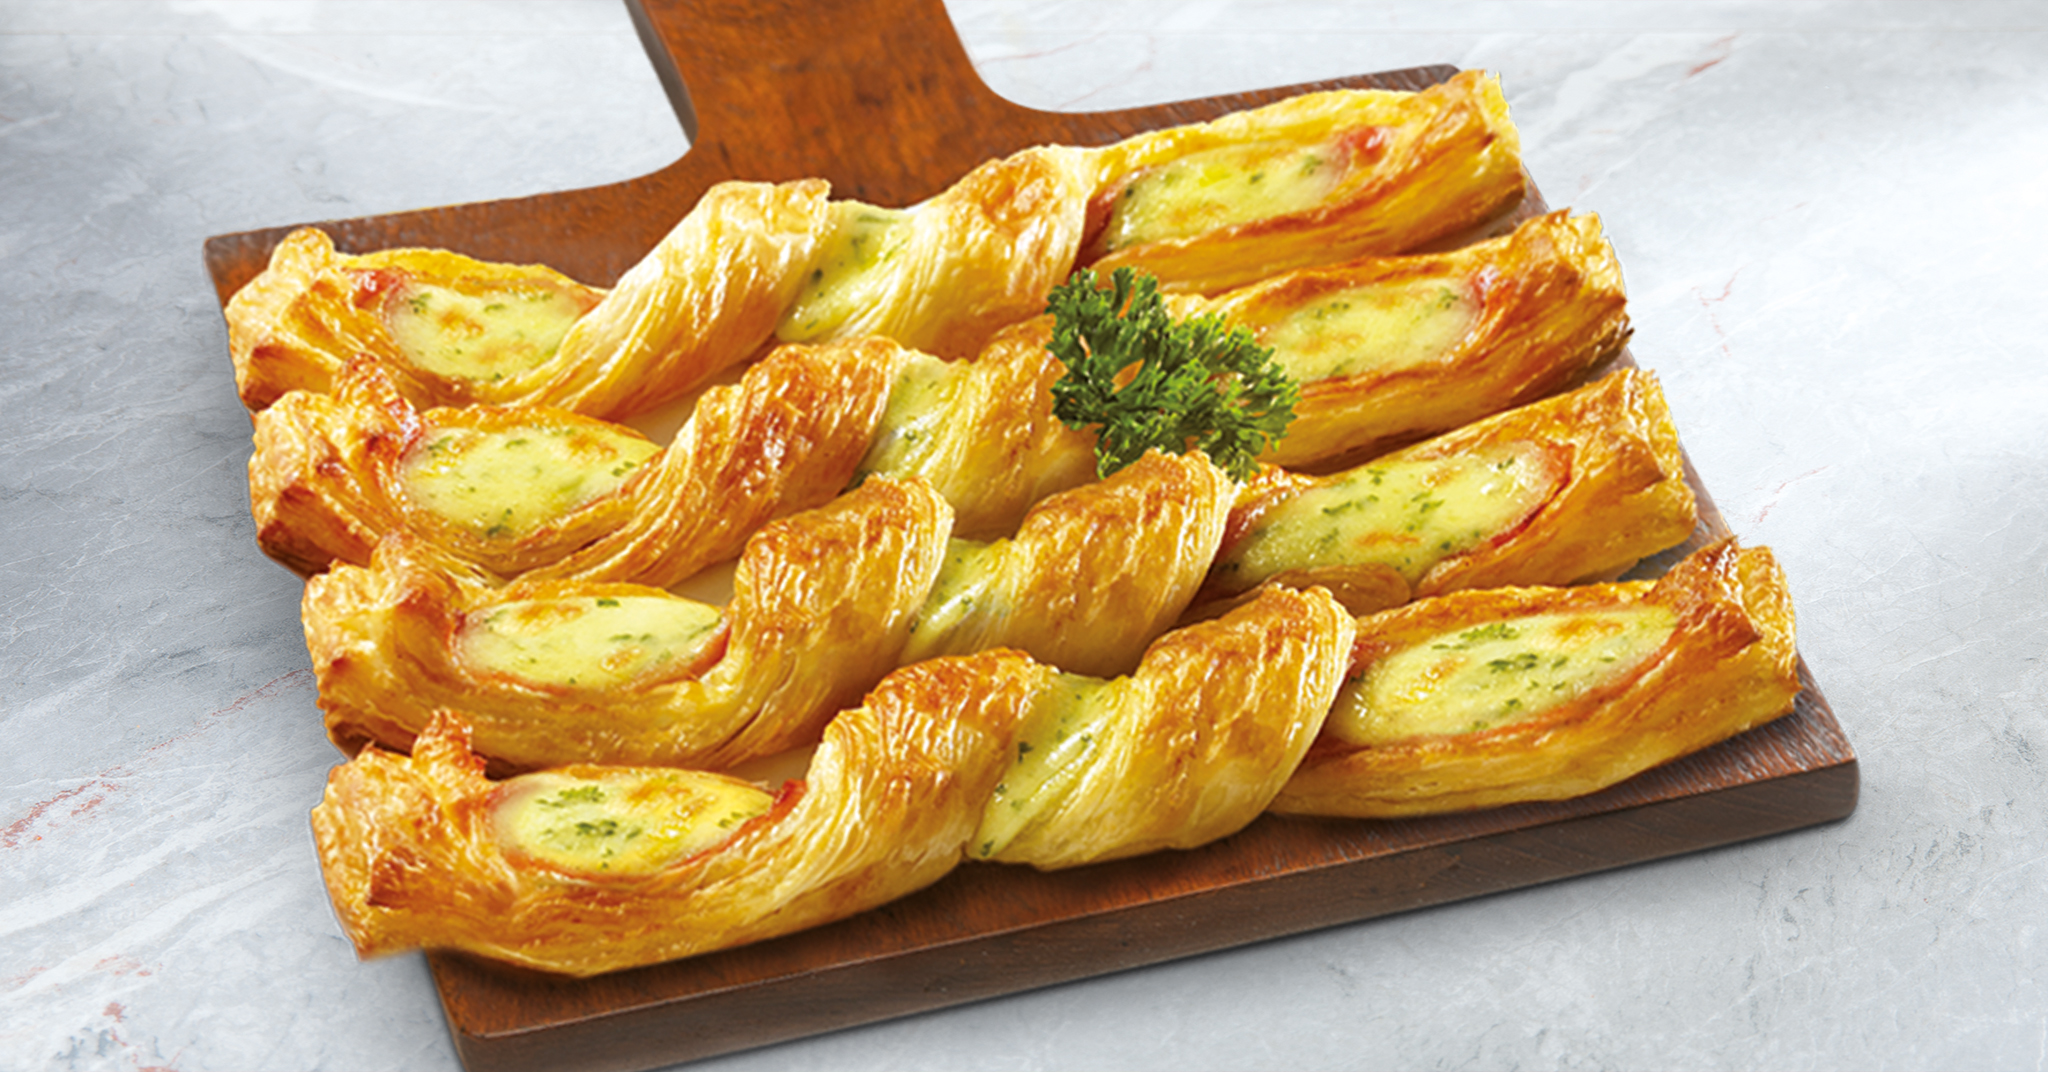 Bacon & Cheese Twist Image